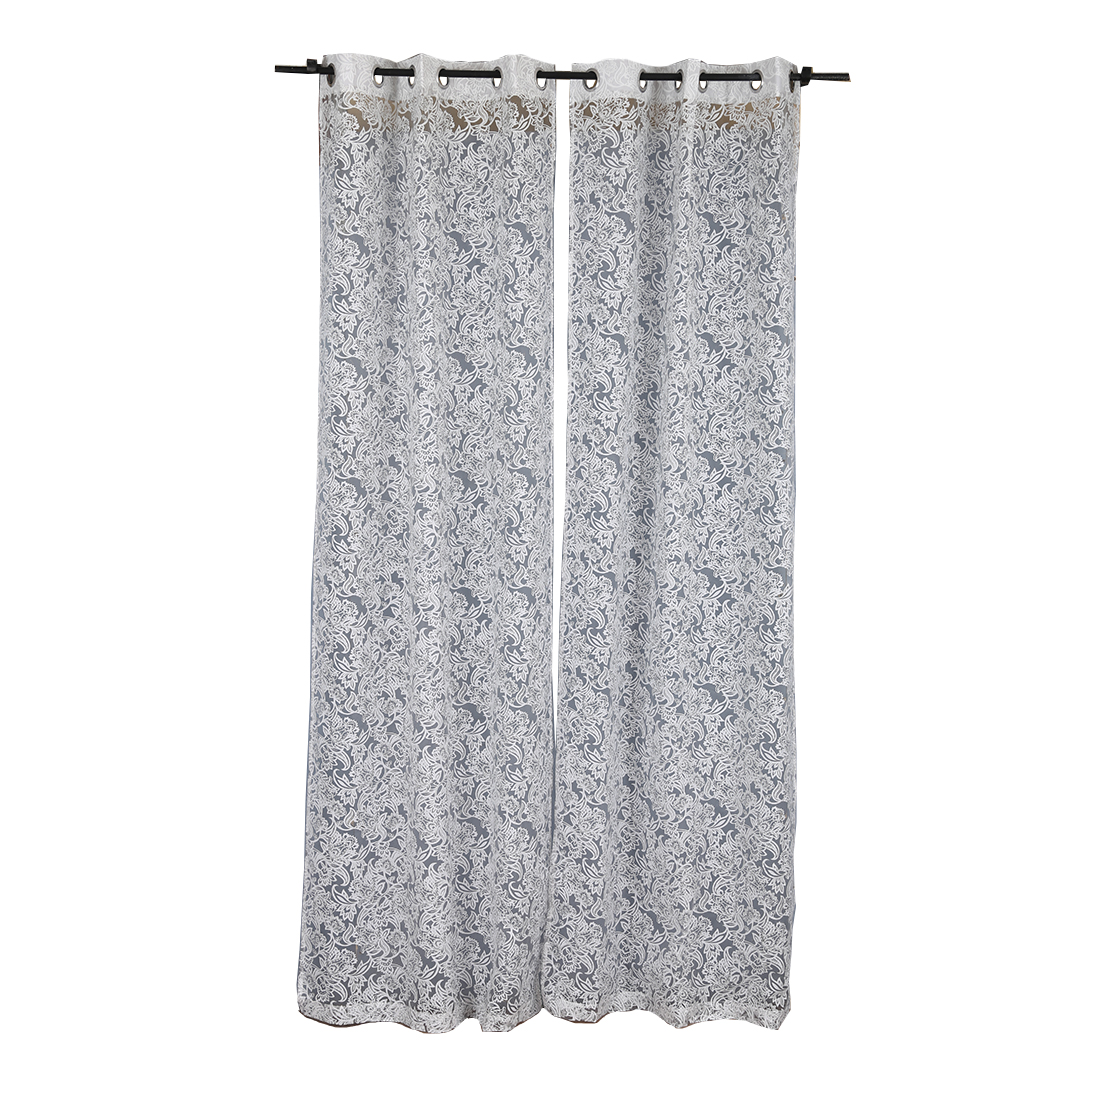 Amour Sheer Extra Large Curtain silver Set of 2 Cotton Polyester Sheer Curtains in Silver Colour by Living Essence